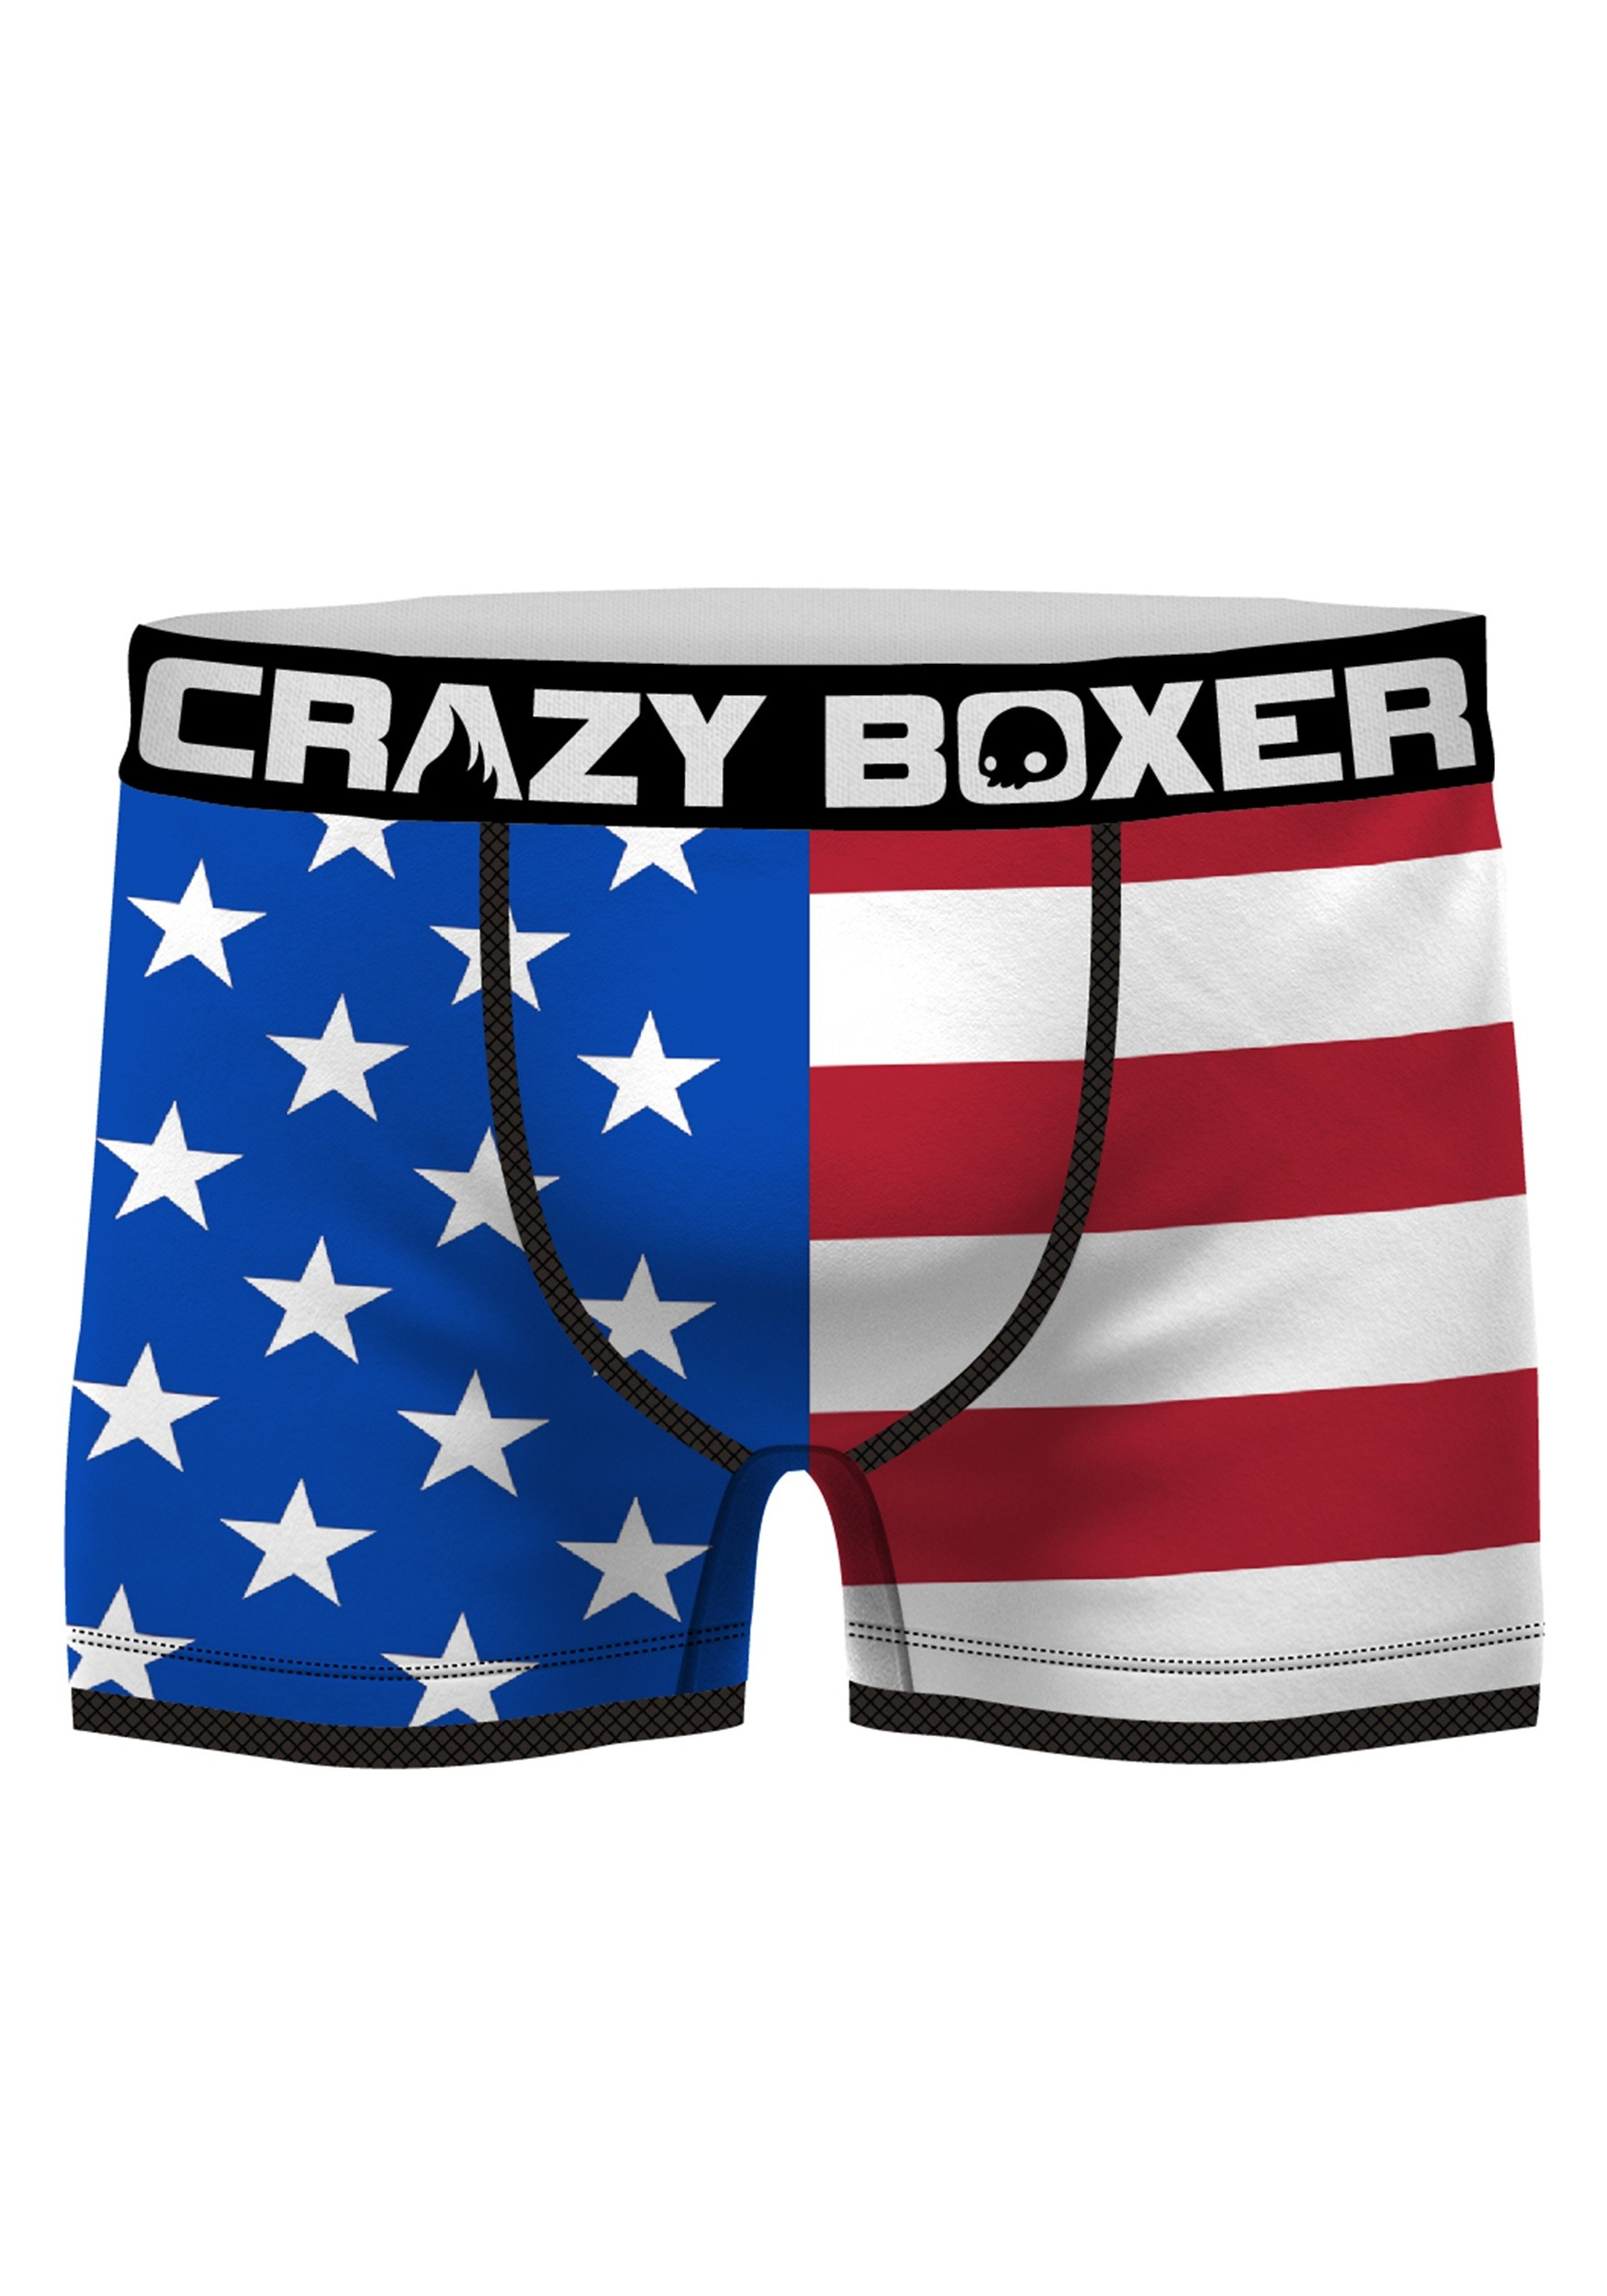 7396a9bacd Crazy Boxers Men's American Flag Boxer Briefs